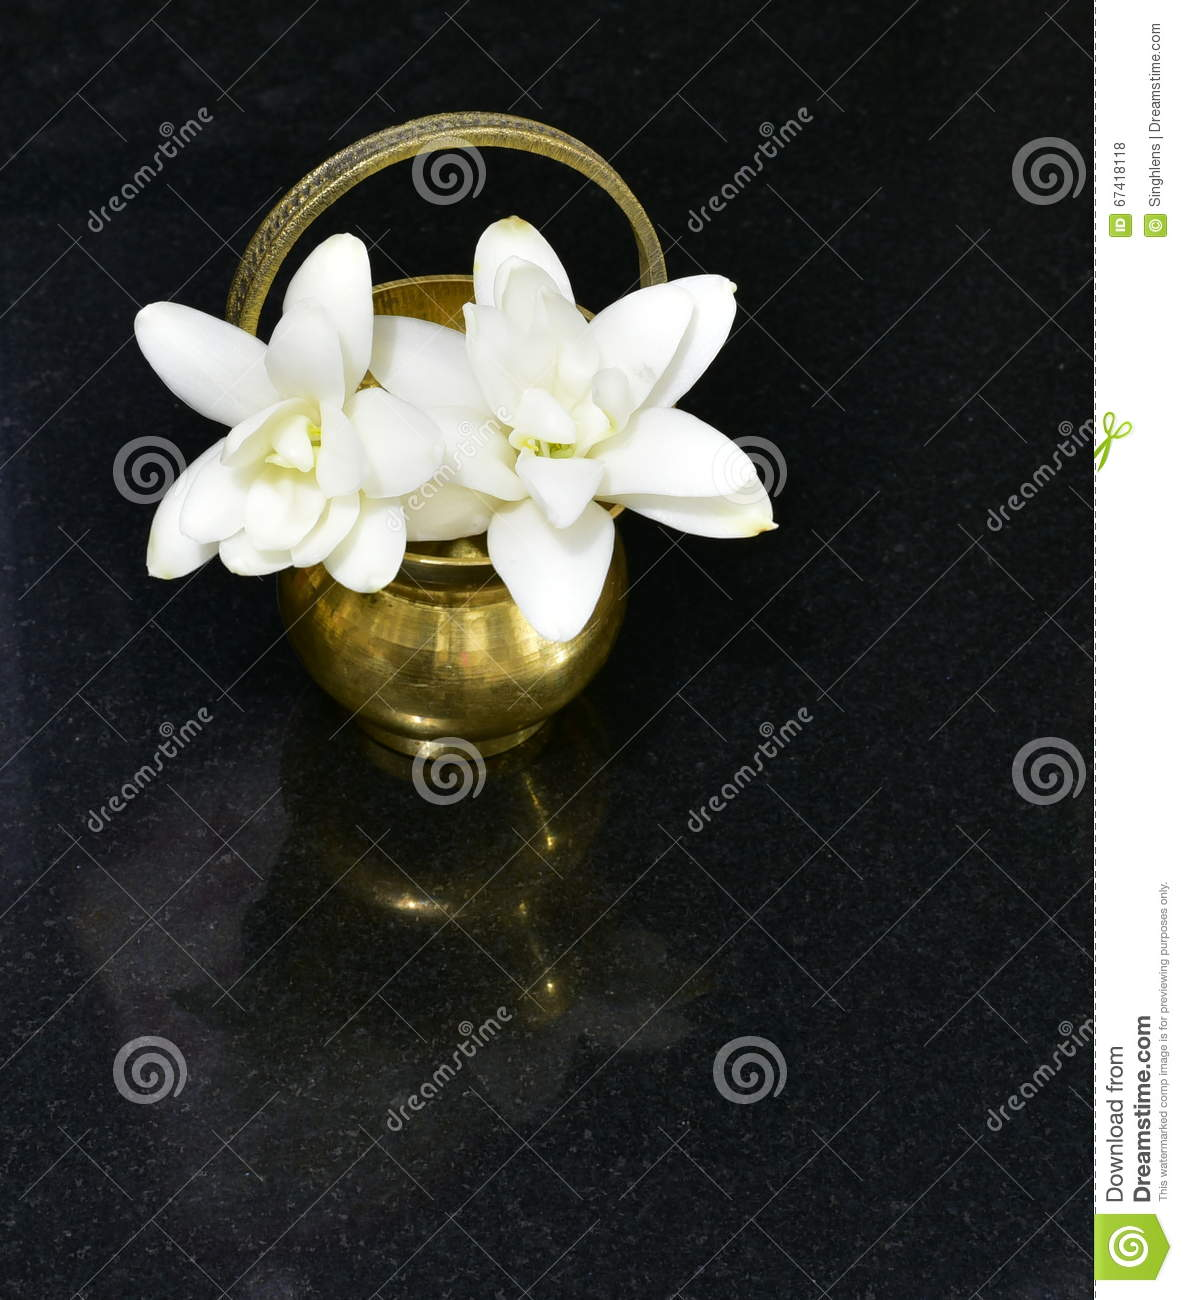 Hinduism prayer brass water pot or kamandal with jasmine flowers hinduism prayer brass water pot or kamandal with jasmine flowers izmirmasajfo